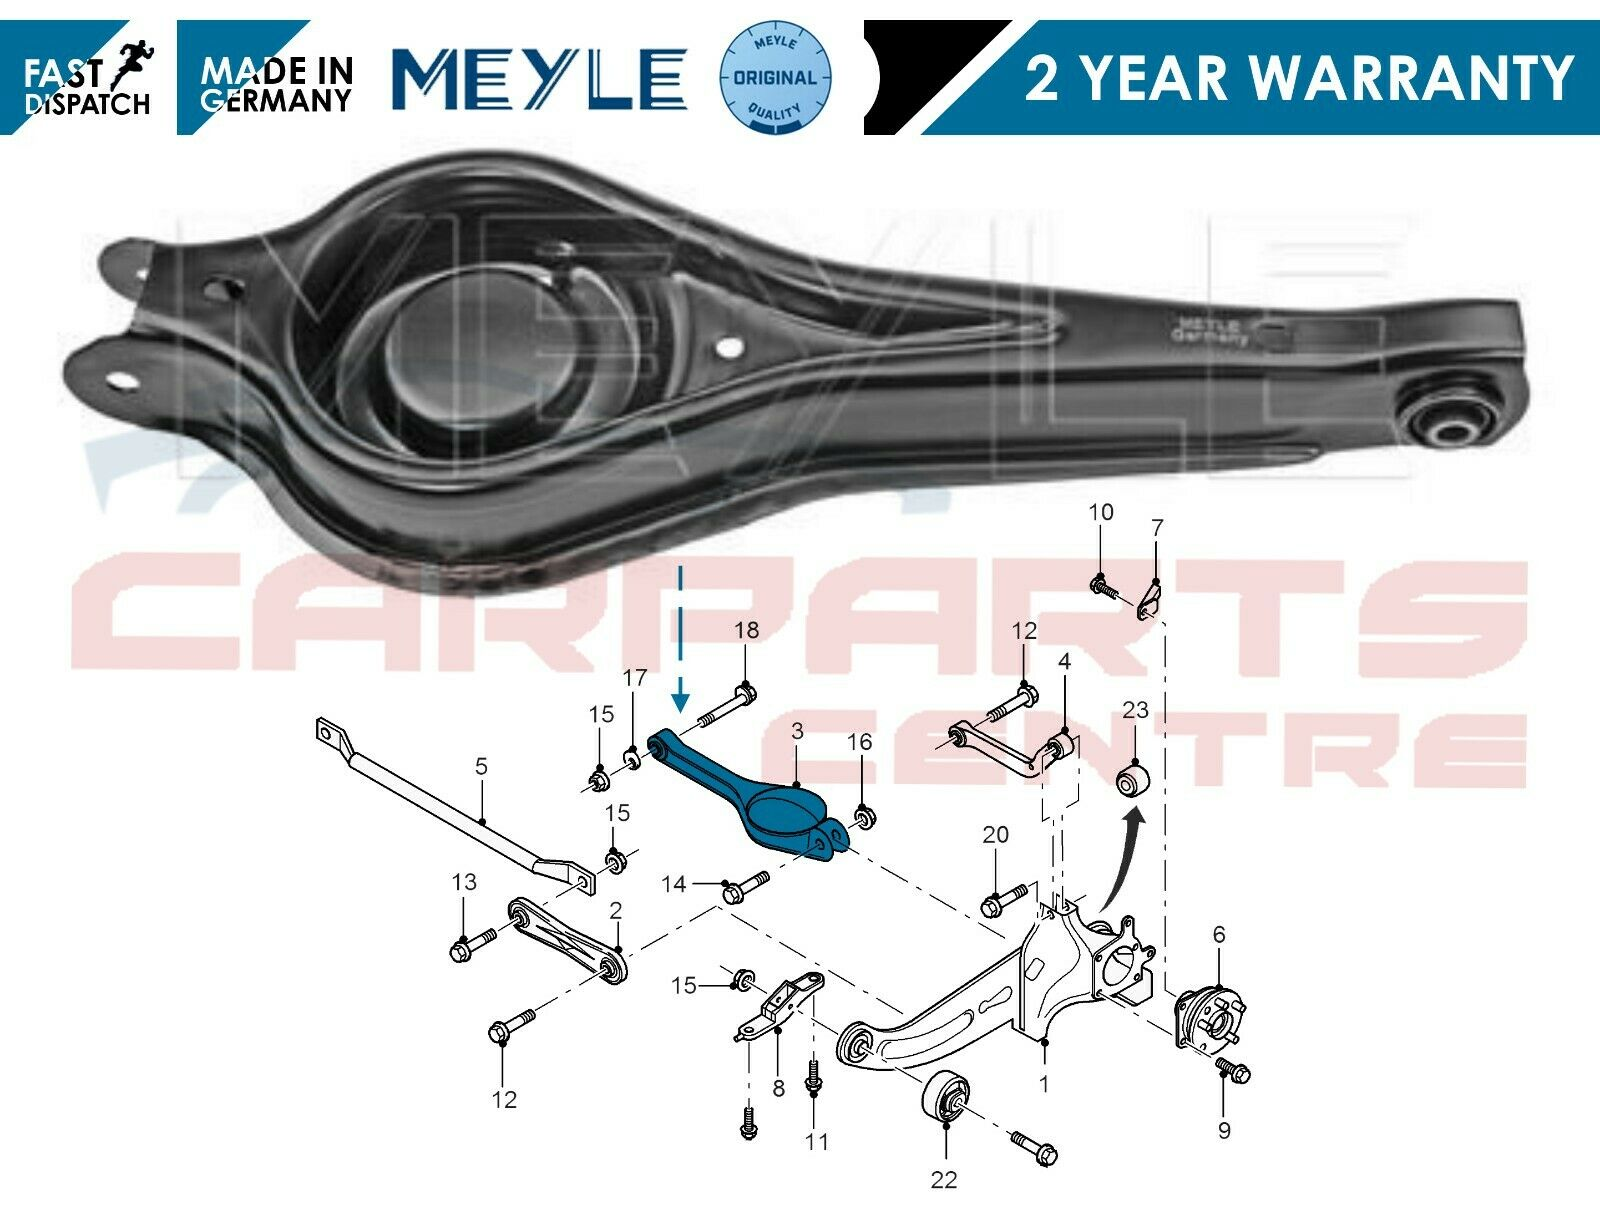 FOR FORD MONDEO MK3 ESTATE REAR LOWER SUSPENSION CONTROL ARM WITH BUSH HD